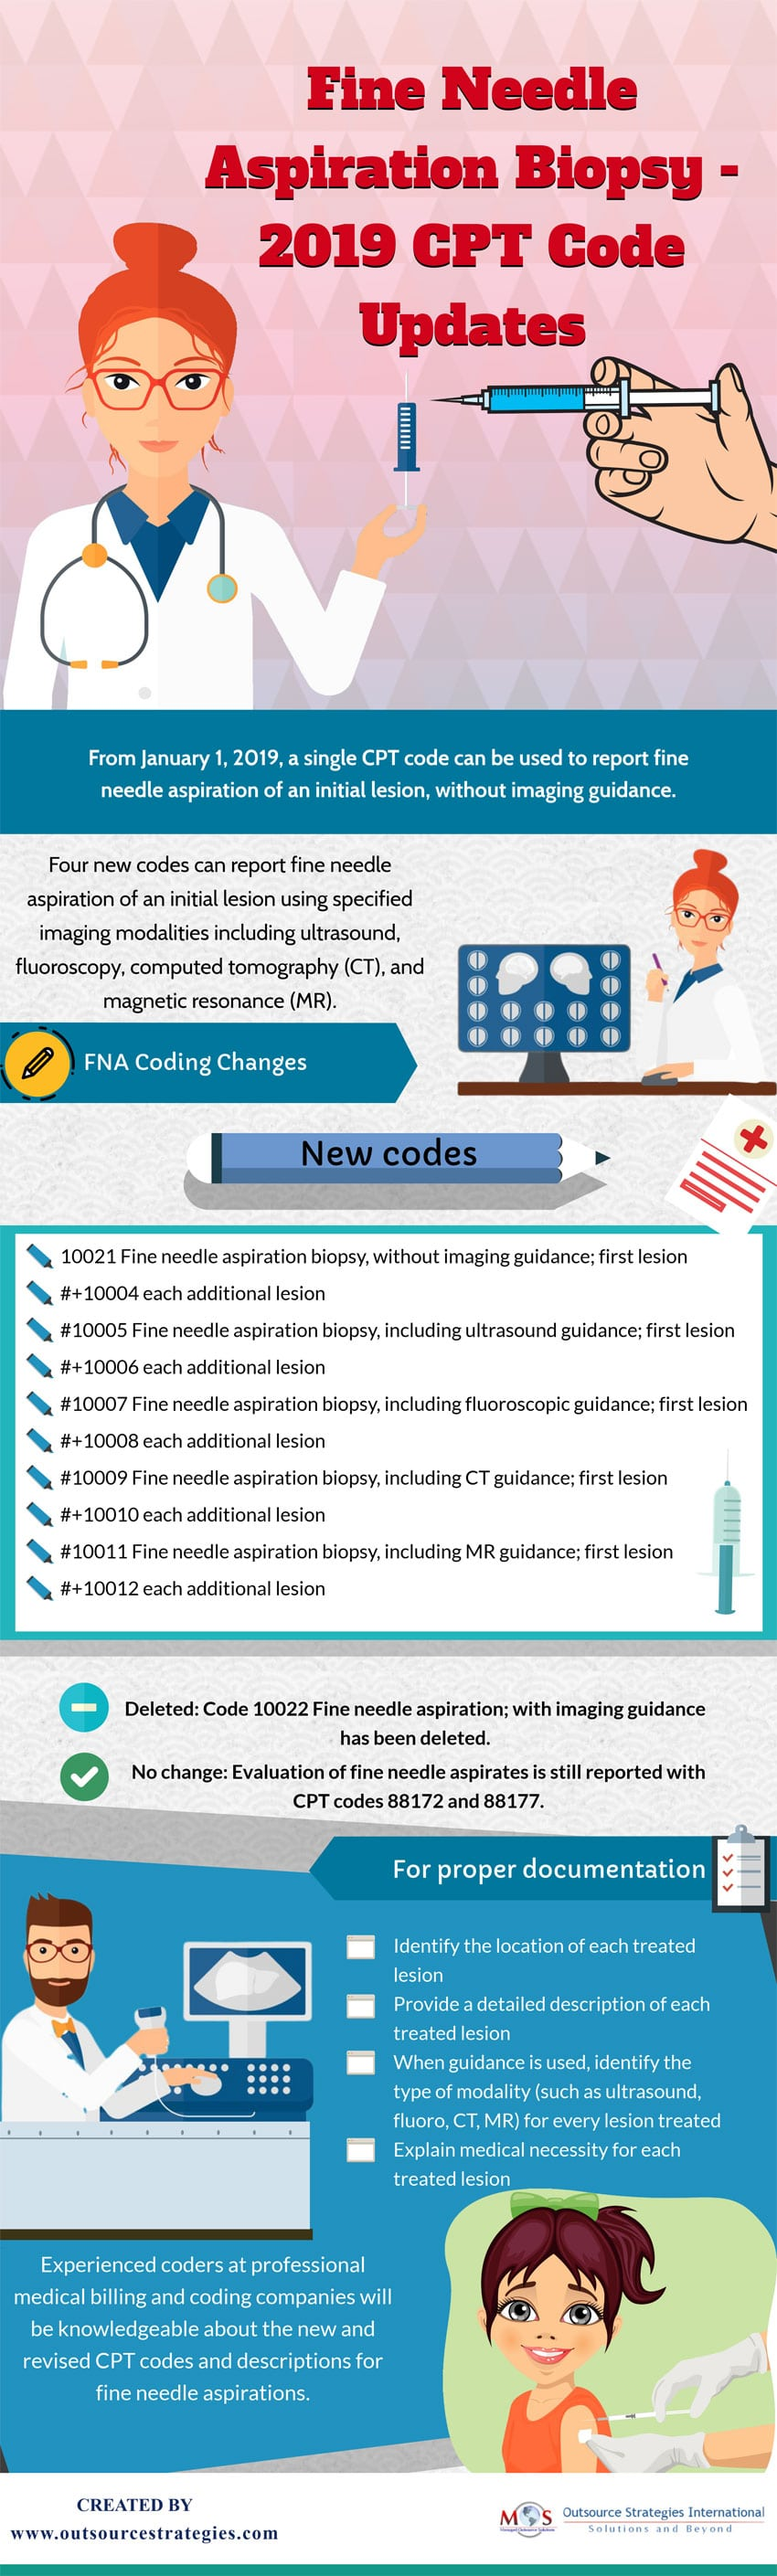 Fine Needle Aspiration Biopsy - 2019 CPT Code Updates